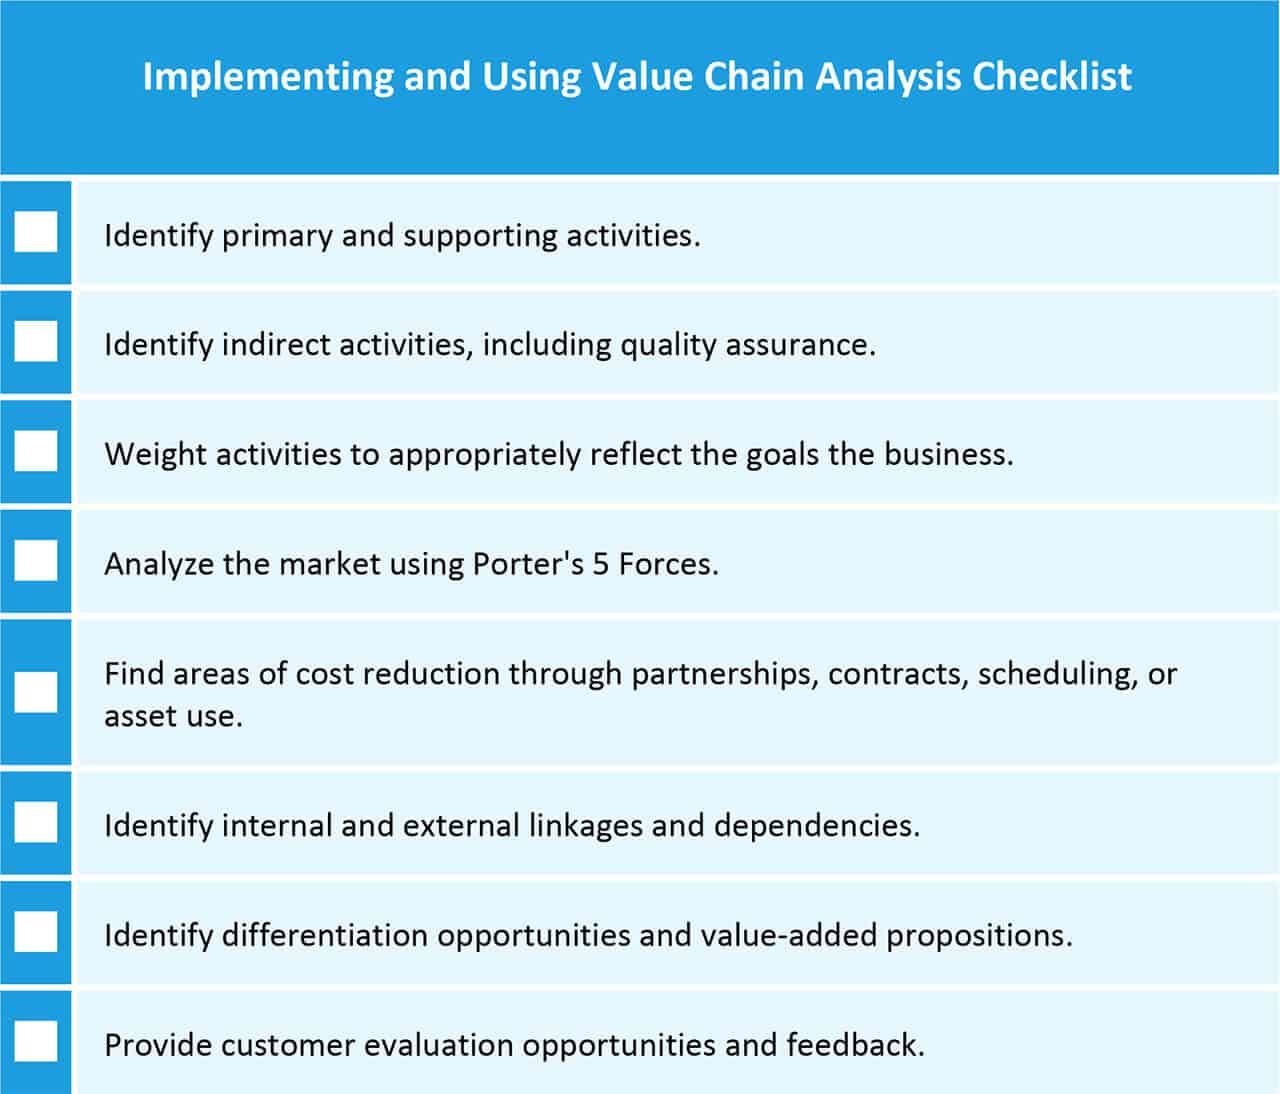 Implementing and using value chain analysis